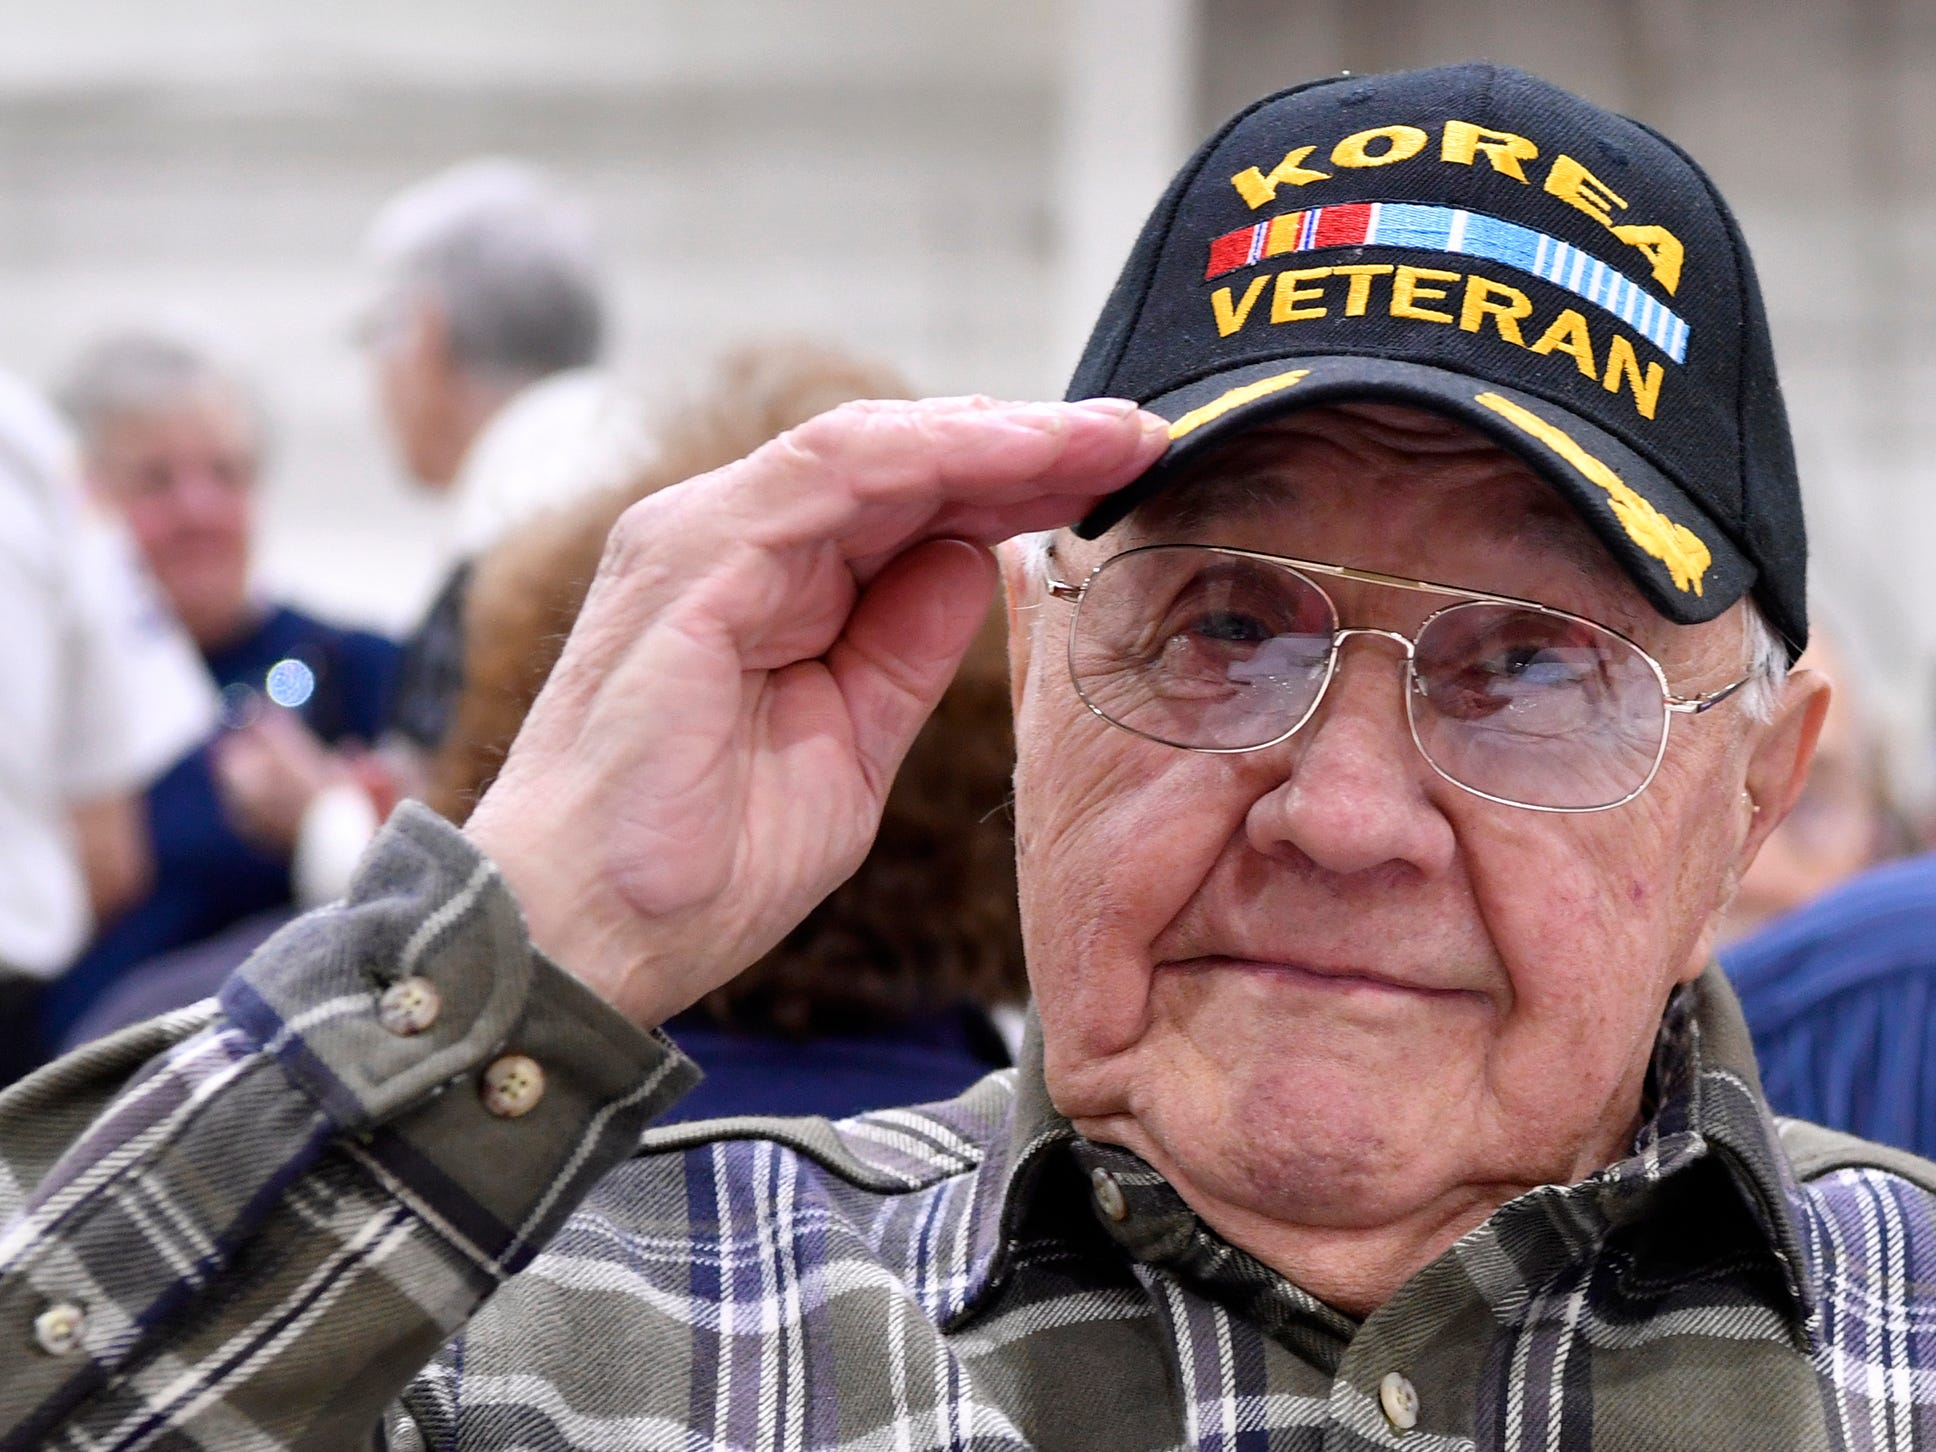 Roger Zeigler of West York salutes during the 2018 York County Veterans Day Celebration, Sunday, November 11, 2018. Zeigler, 88, served with the US Army Corps of Engineers during the Korean War.John A. Pavoncello photo